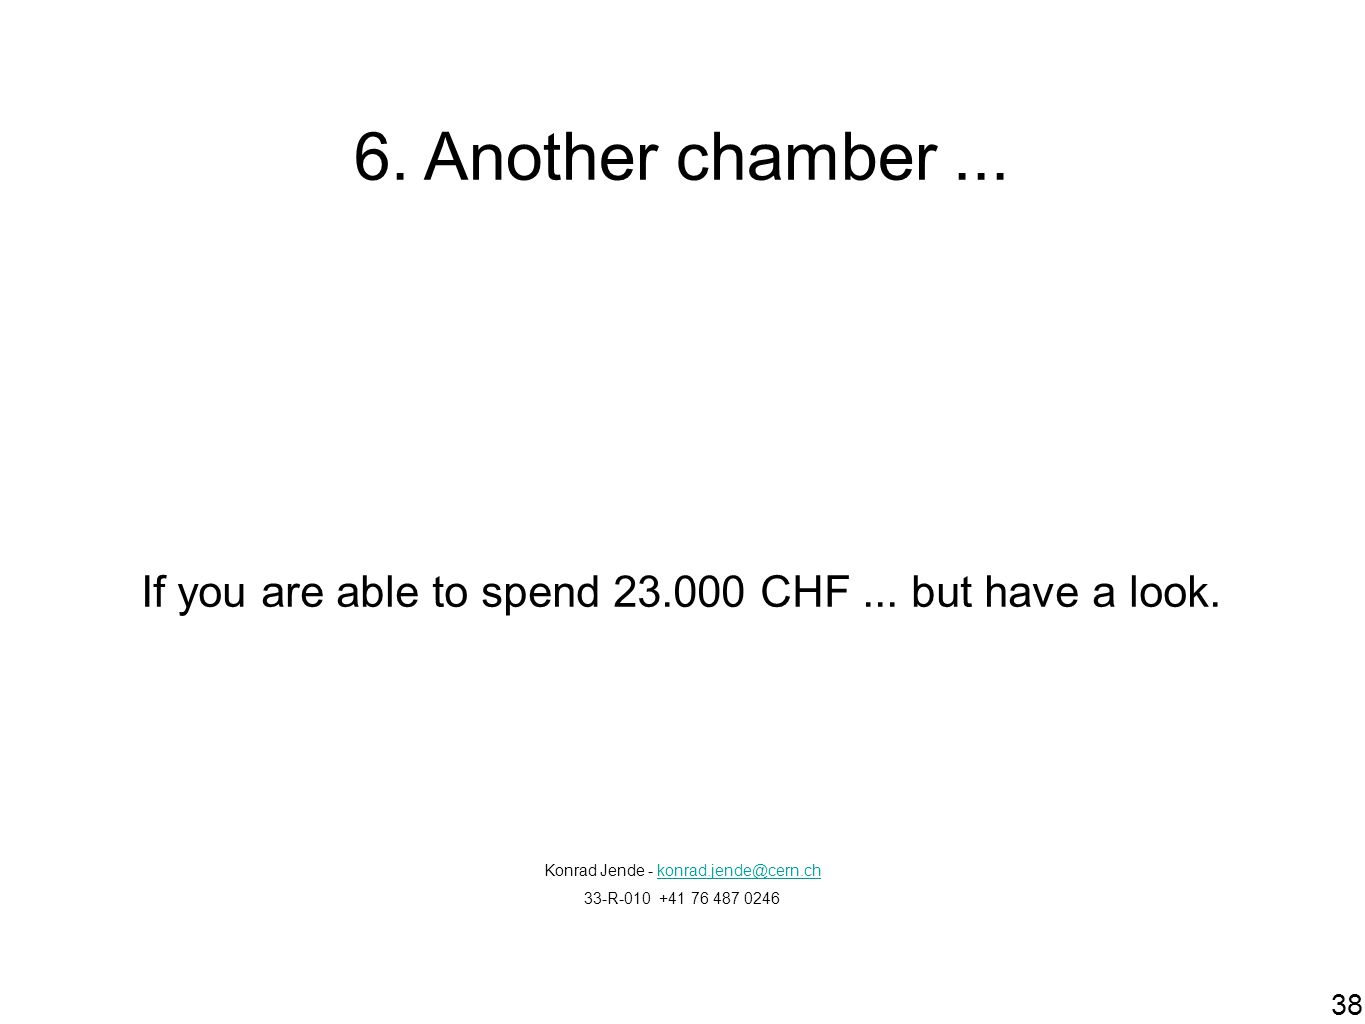 6. Another chamber ... If you are able to spend 23.000 CHF ... but have a look. Konrad Jende - konrad.jende@cern.ch.